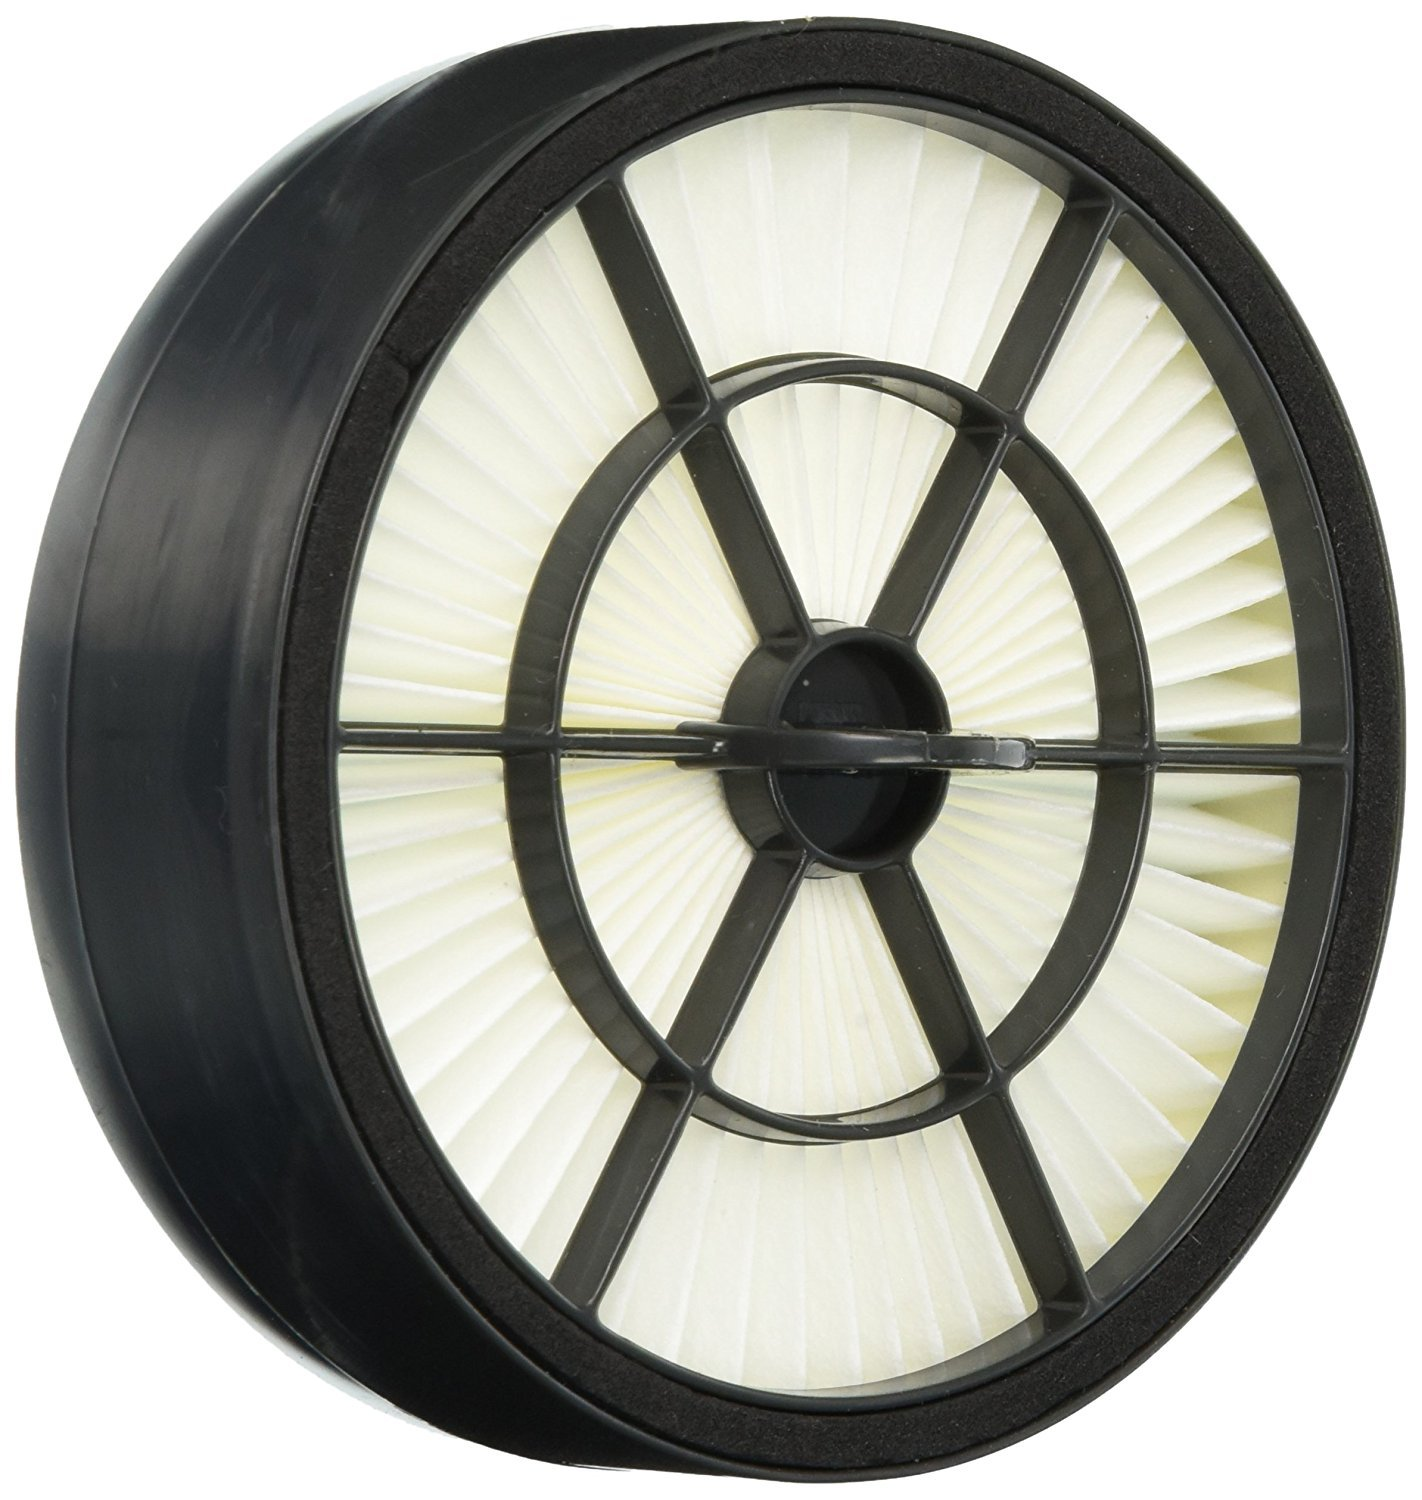 Pleated Primary Filter Designed to Fit Hoover Vacuum 440001619